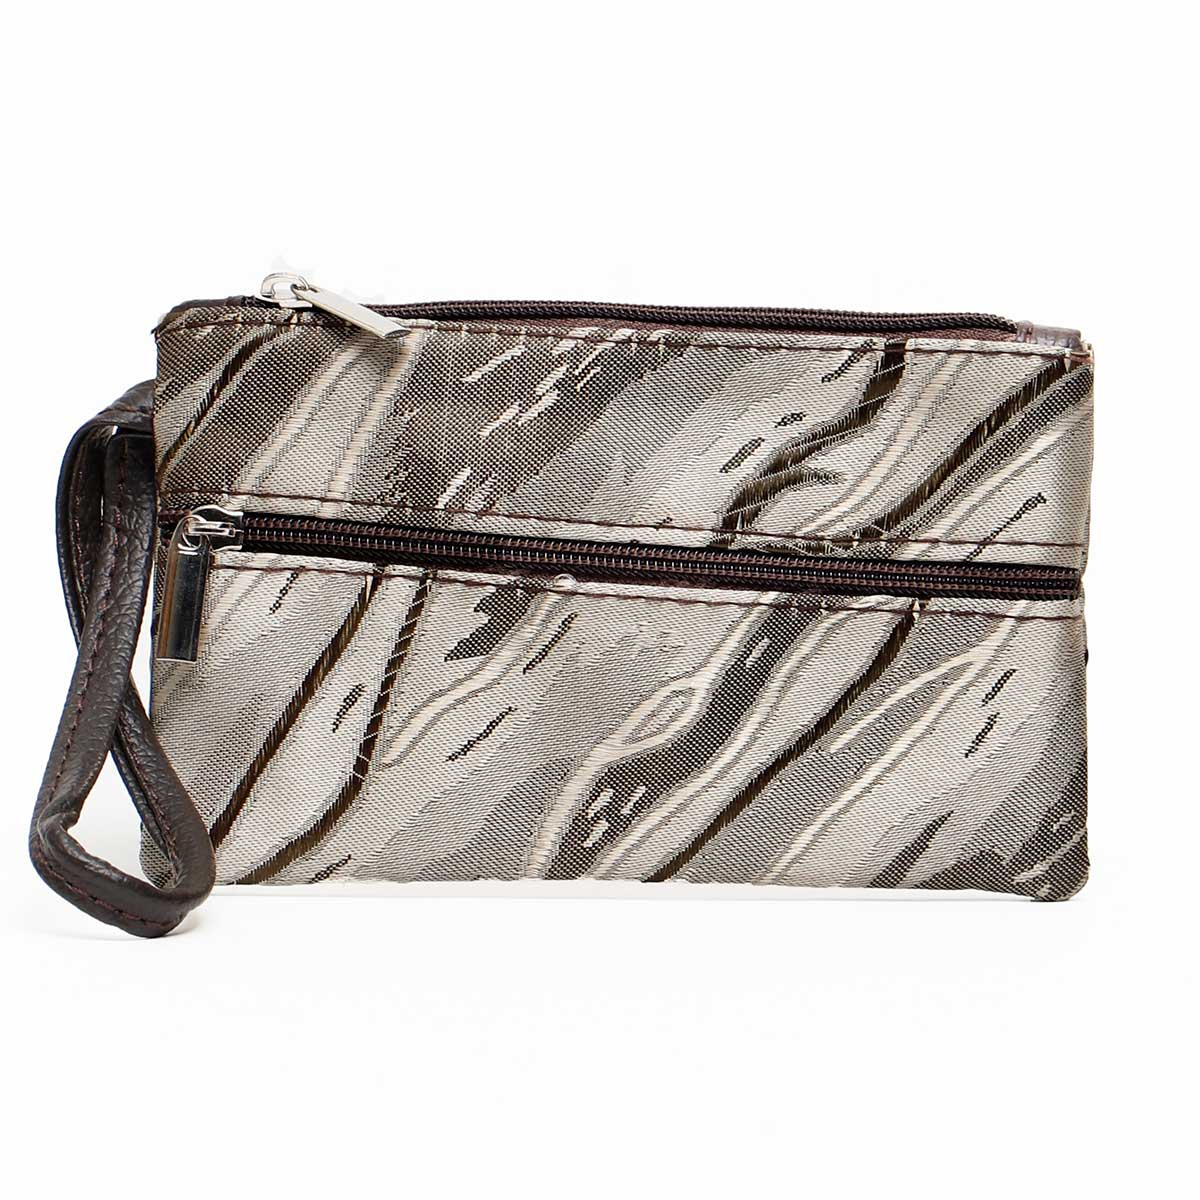 CHAMPAGNE RIVER COIN/CARD PURSE 3 ZIPPERS